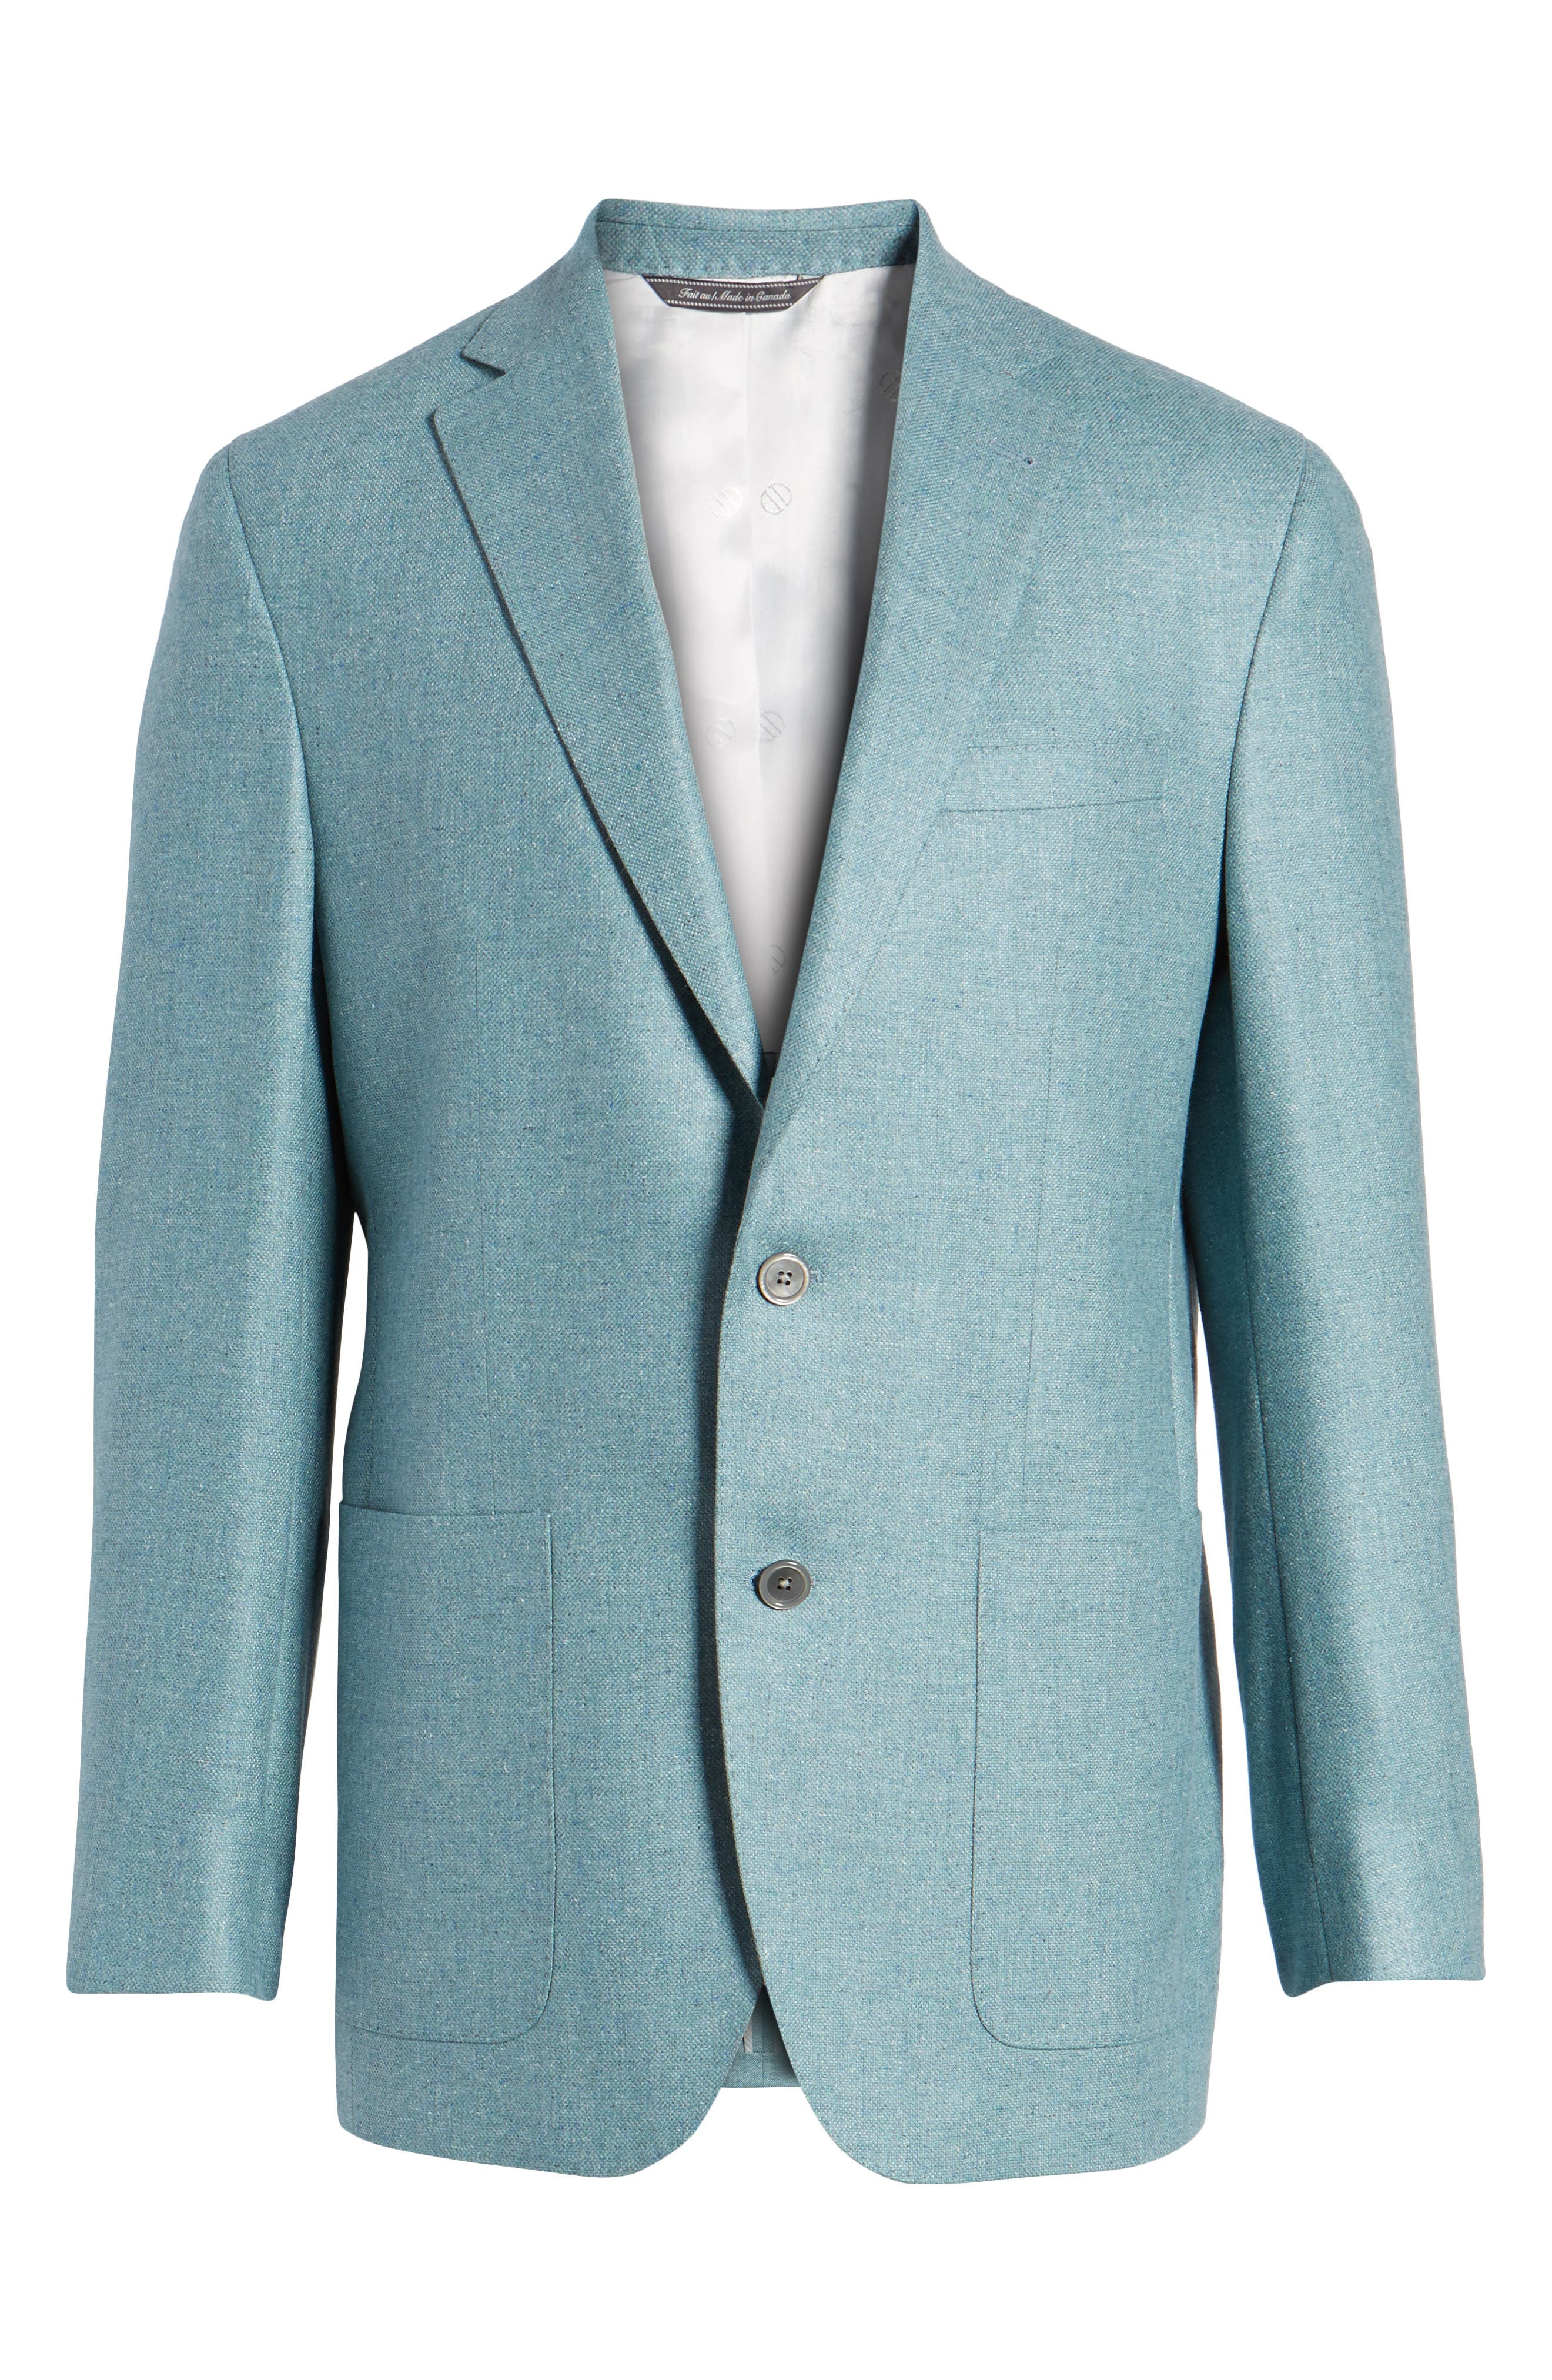 Aiden Classic Fit Silk & Wool Blazer,                             Alternate thumbnail 6, color,                             Teal